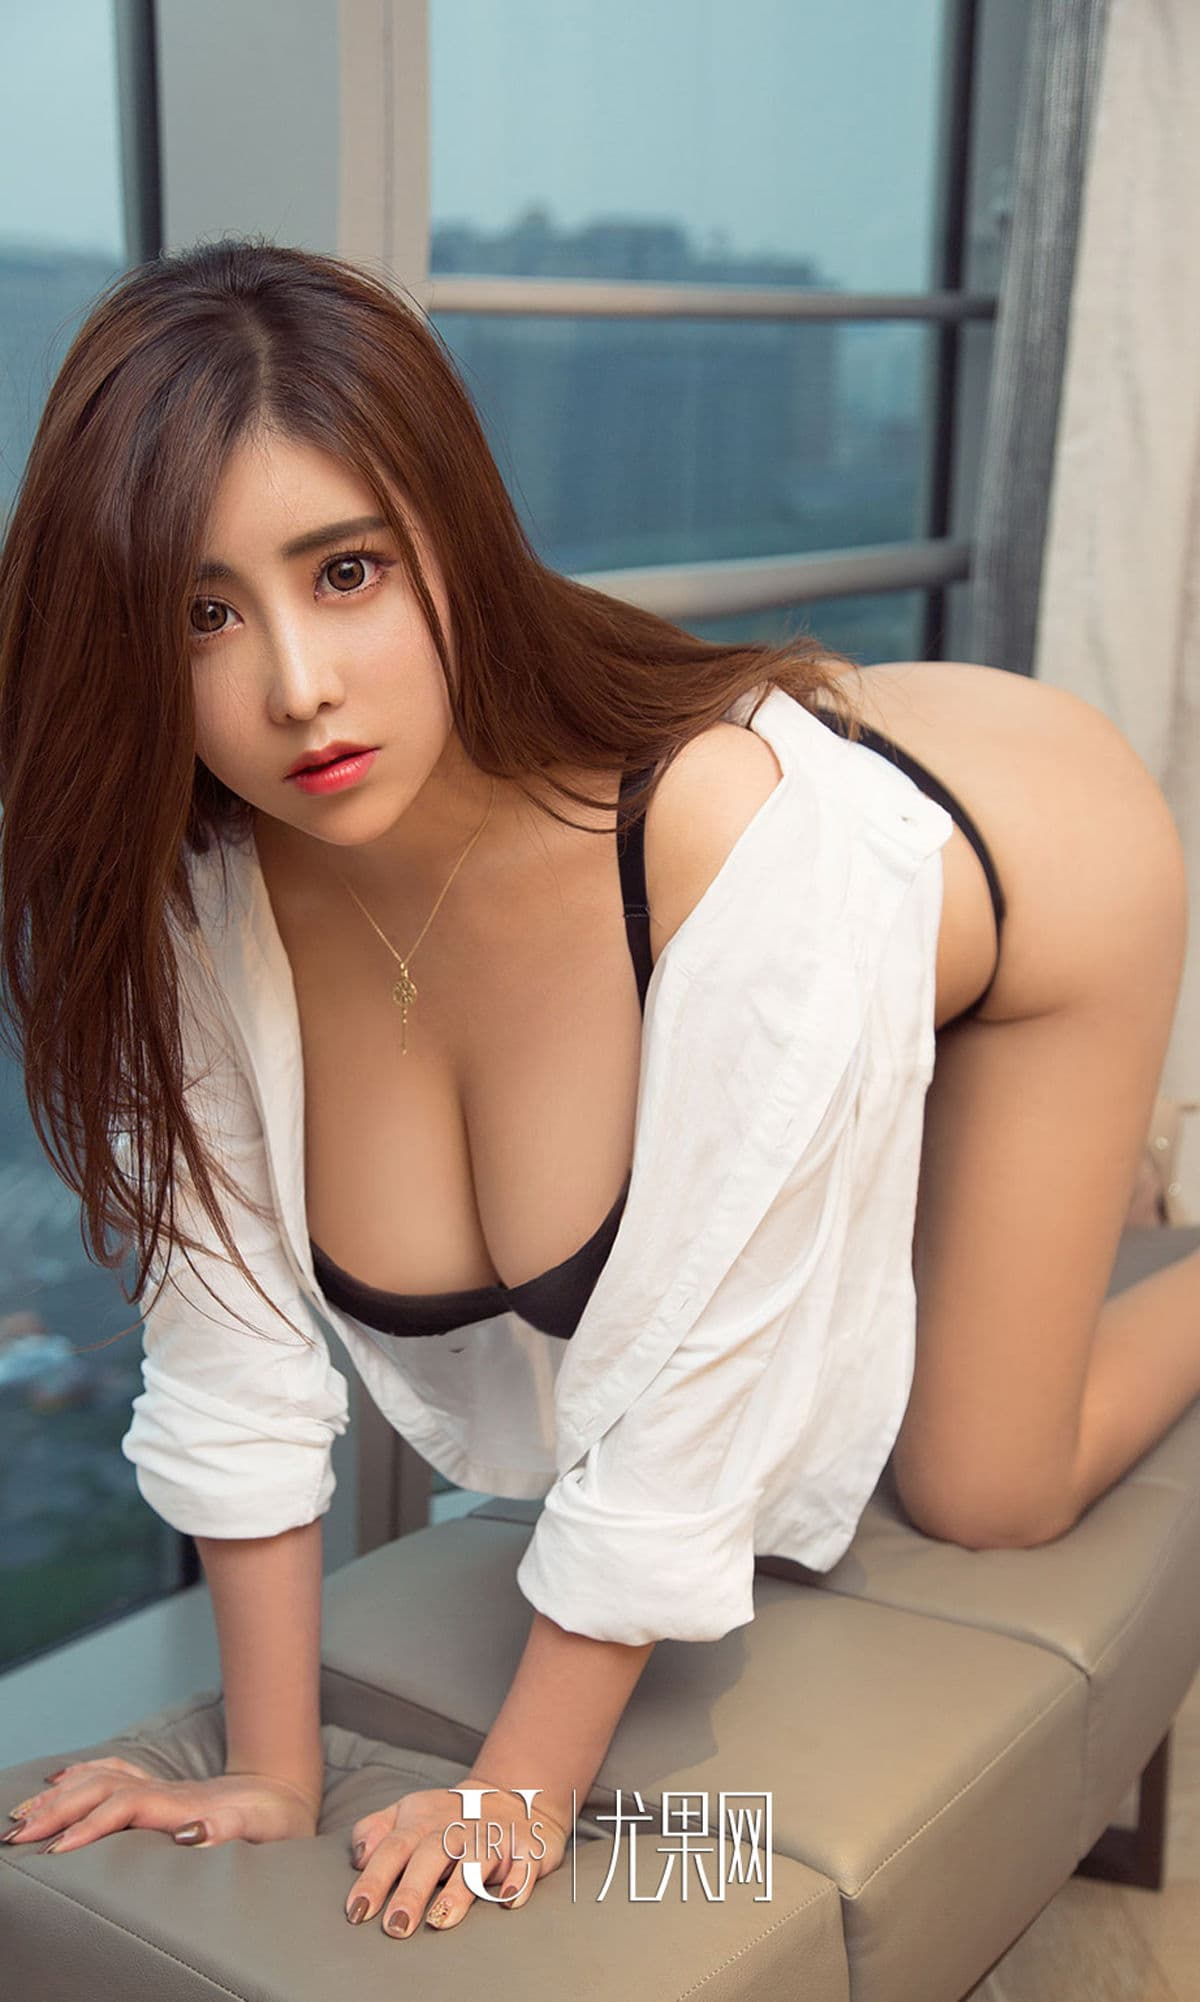 wow, Chinese glamour in sexy pose